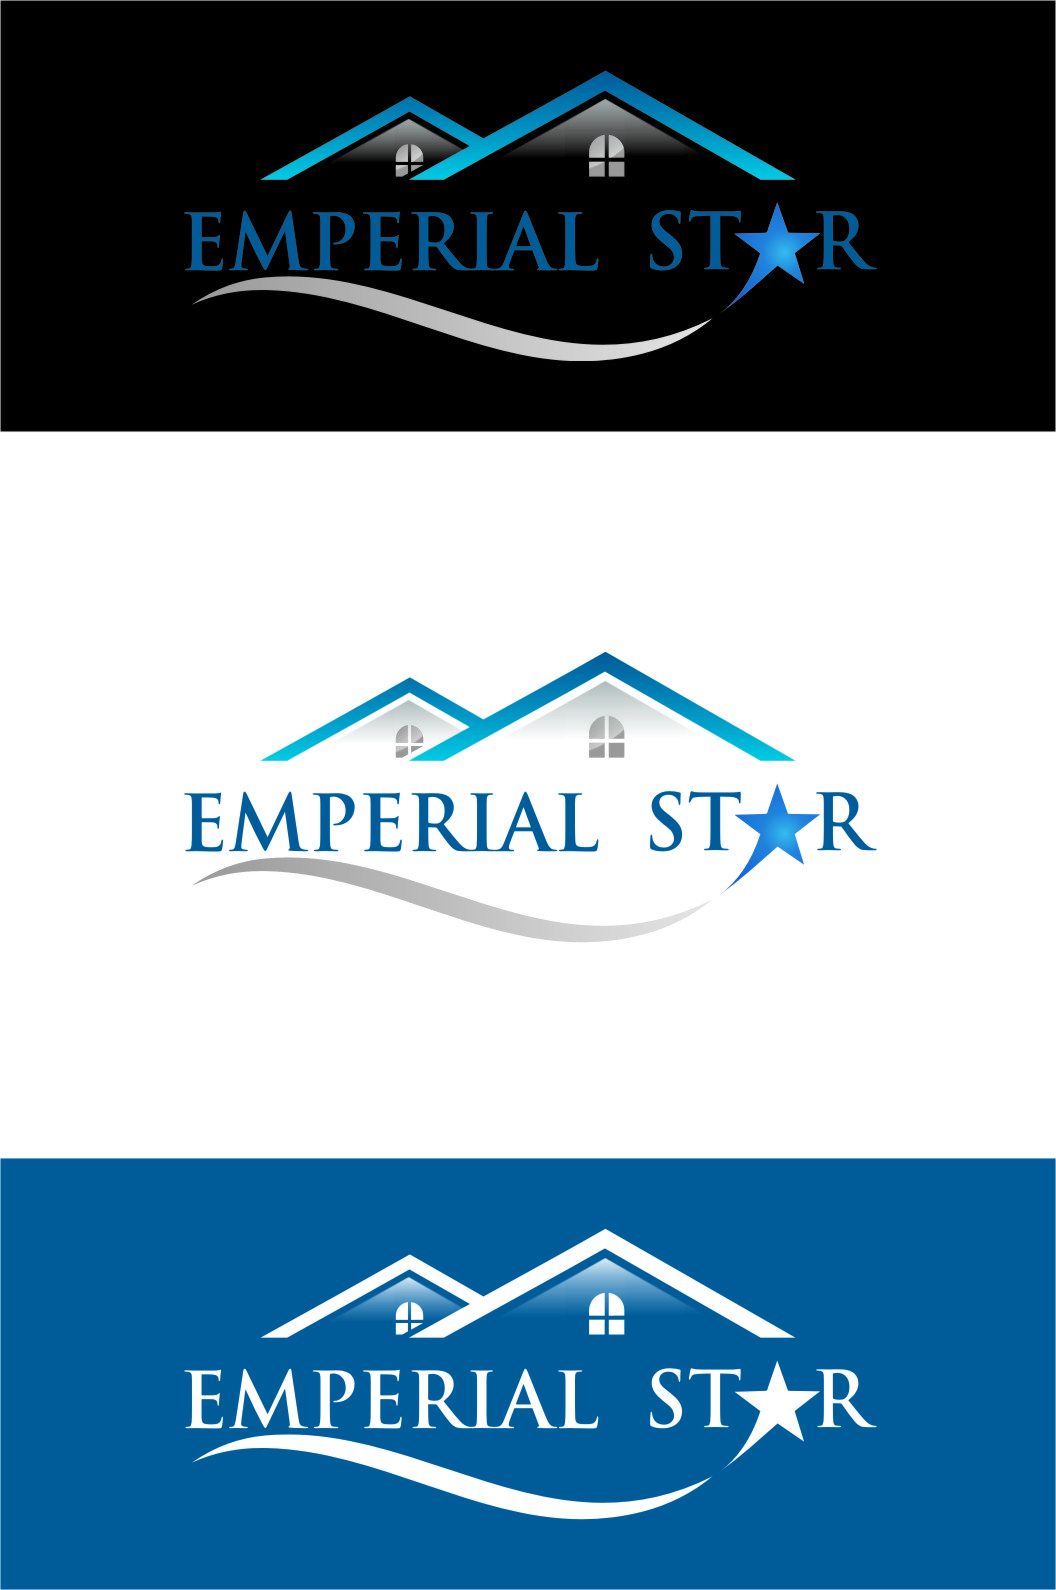 Logo Design by Ngepet_art - Entry No. 127 in the Logo Design Contest Emperial Star Logo Design.